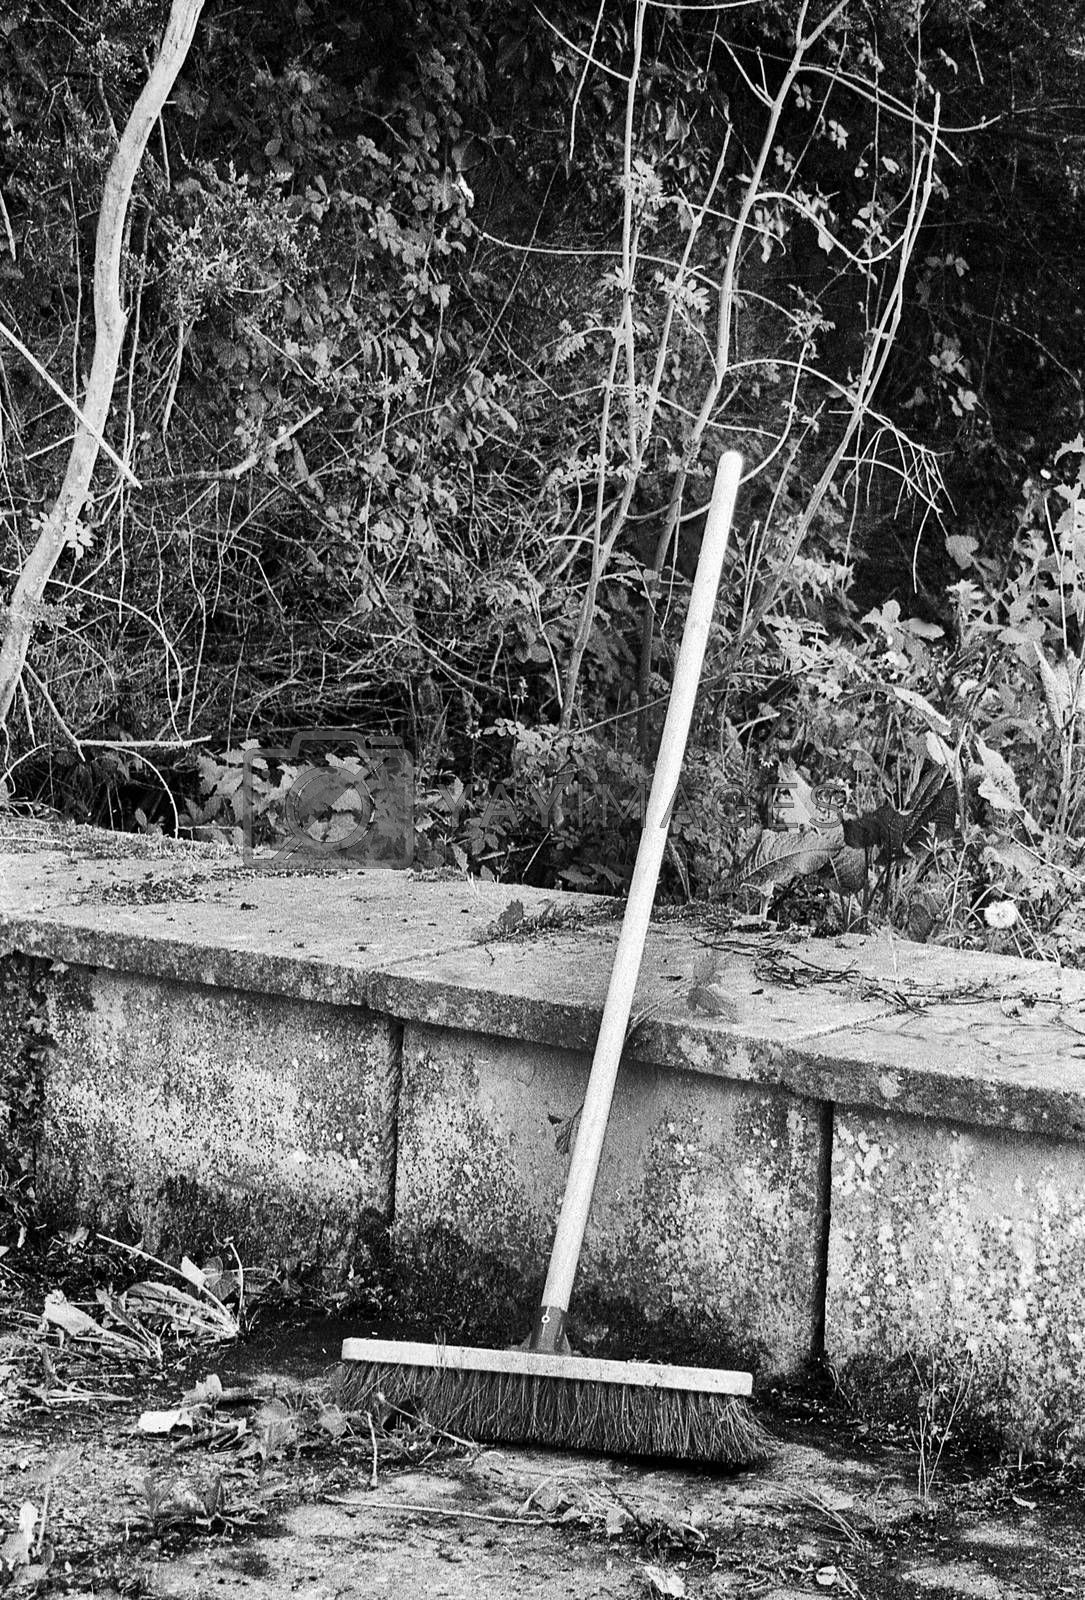 tidy the garden in summer and sweep it with the broom, this black and white photo was taken with a pinhole film camera, which corresponds to the camera characteristic